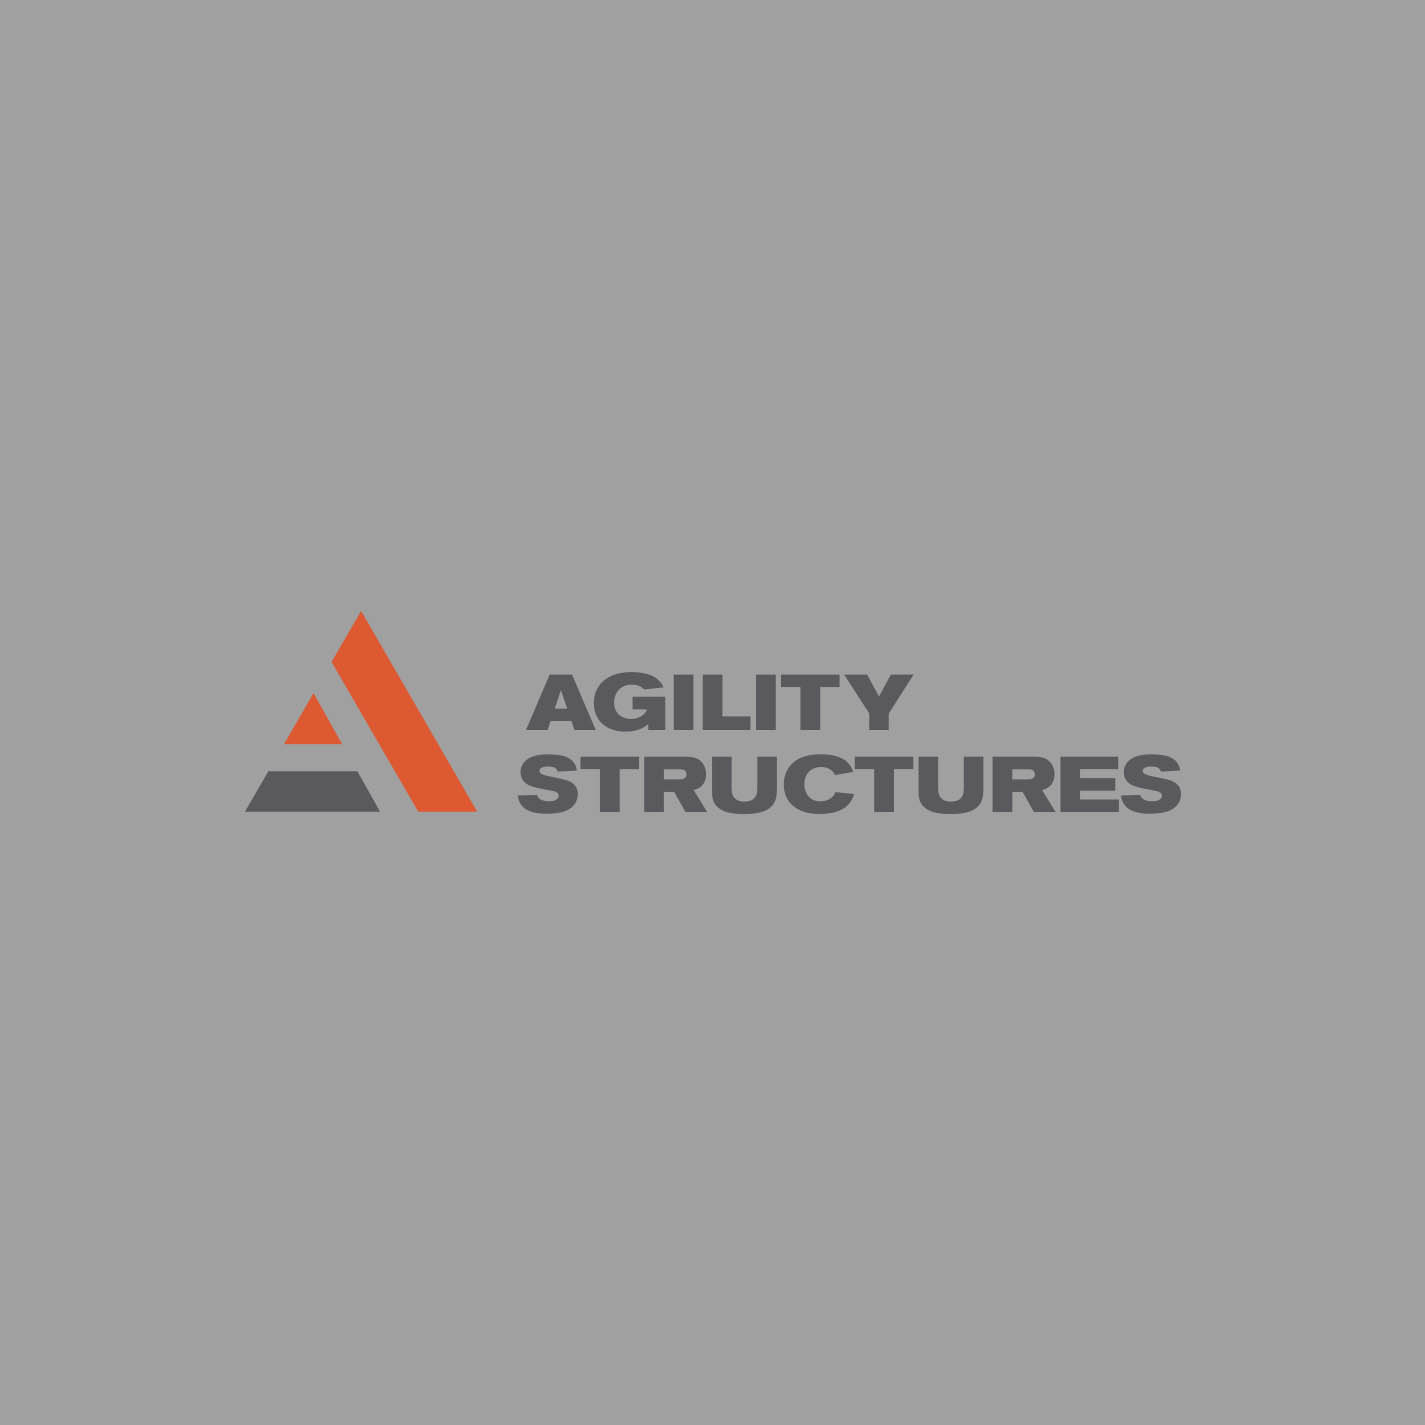 Agility Structures